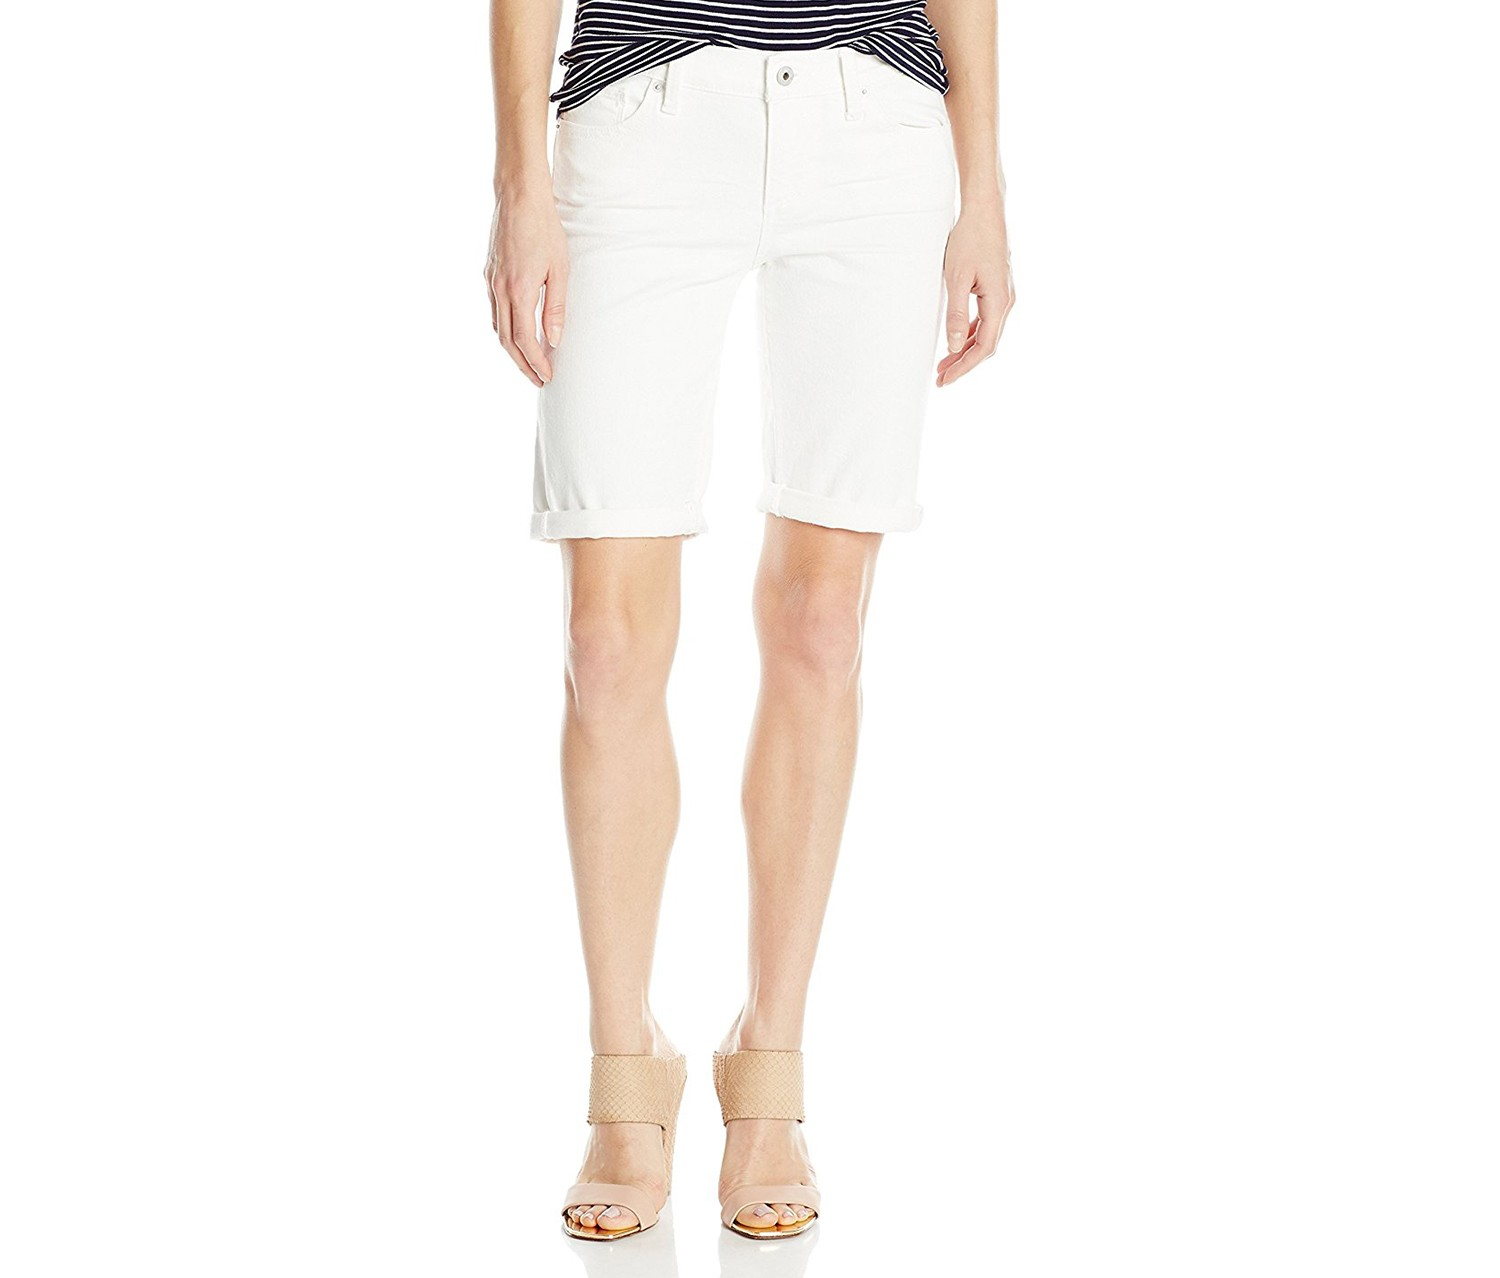 Lucky Brand Women's Denim Bermuda Short, White Cap